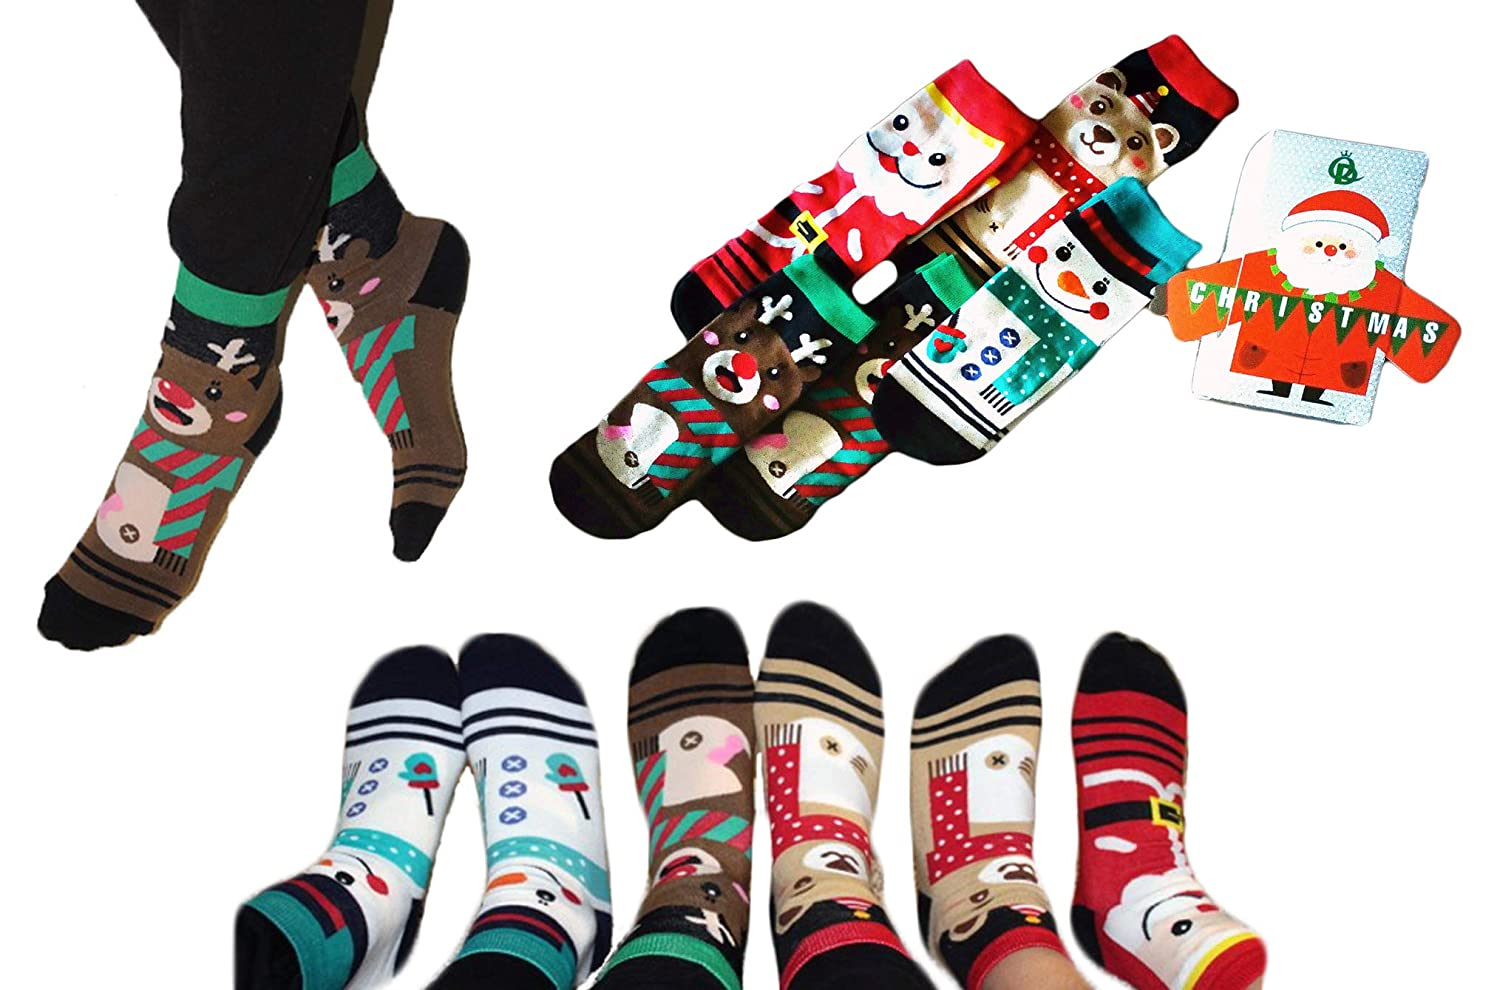 Holidays R Us Christmas Holiday 5-Pack Gift Socks for Women & Kids with Gift Box Nice Sweaters Co. Ltd.